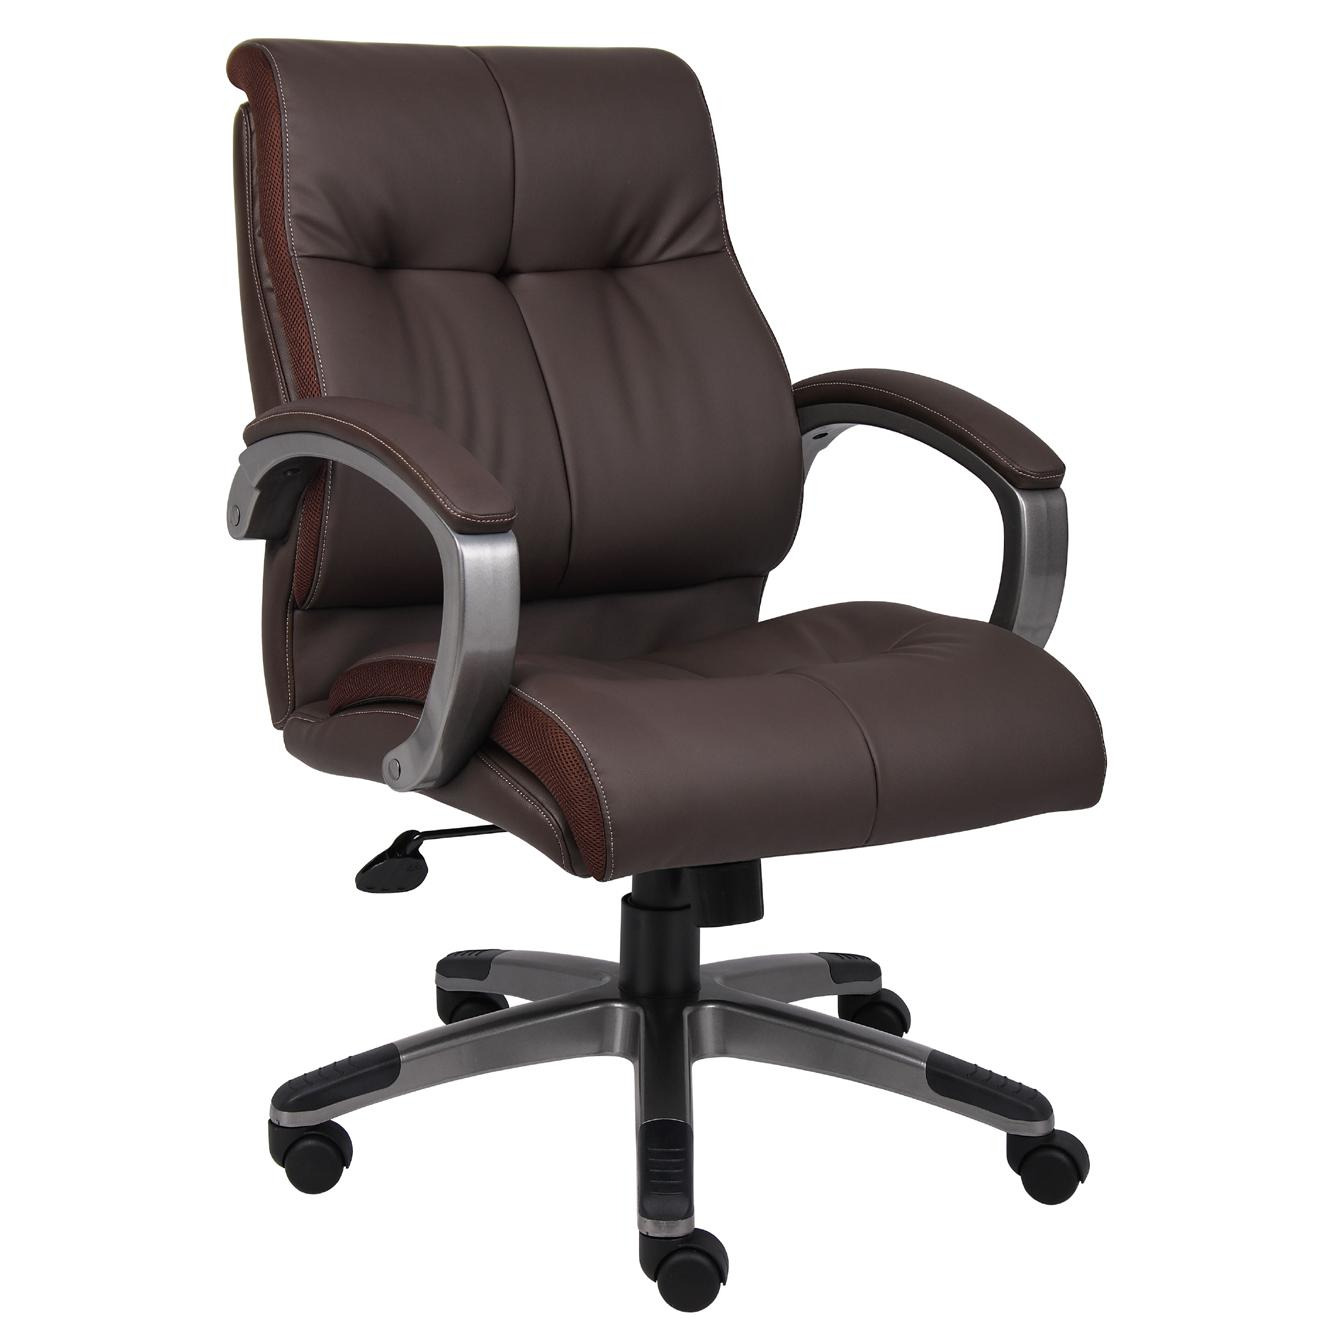 Brown Leather Executive Desk Chair